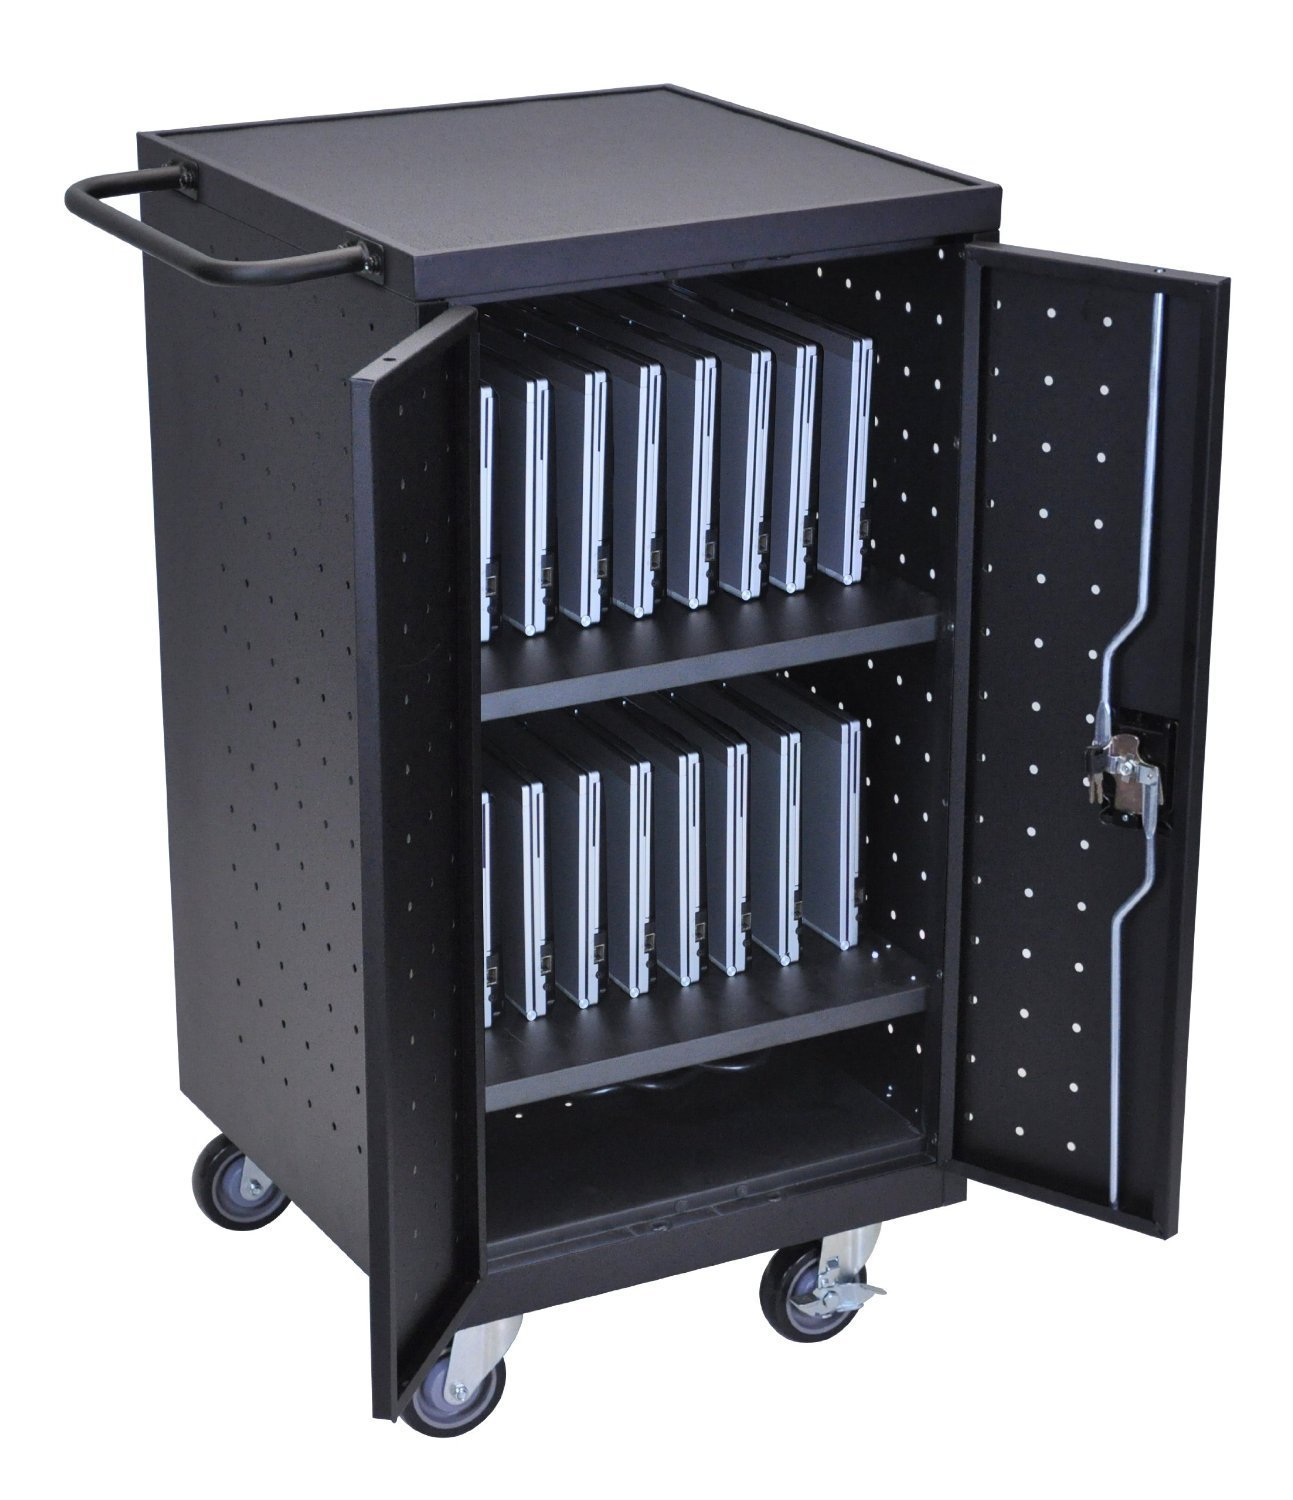 LUXOR LLTP18-B Laptop Computer Charging Cart 18  Black Amazon.com Industrial u0026 Scientific  sc 1 st  Amazon.com & LUXOR LLTP18-B Laptop Computer Charging Cart 18